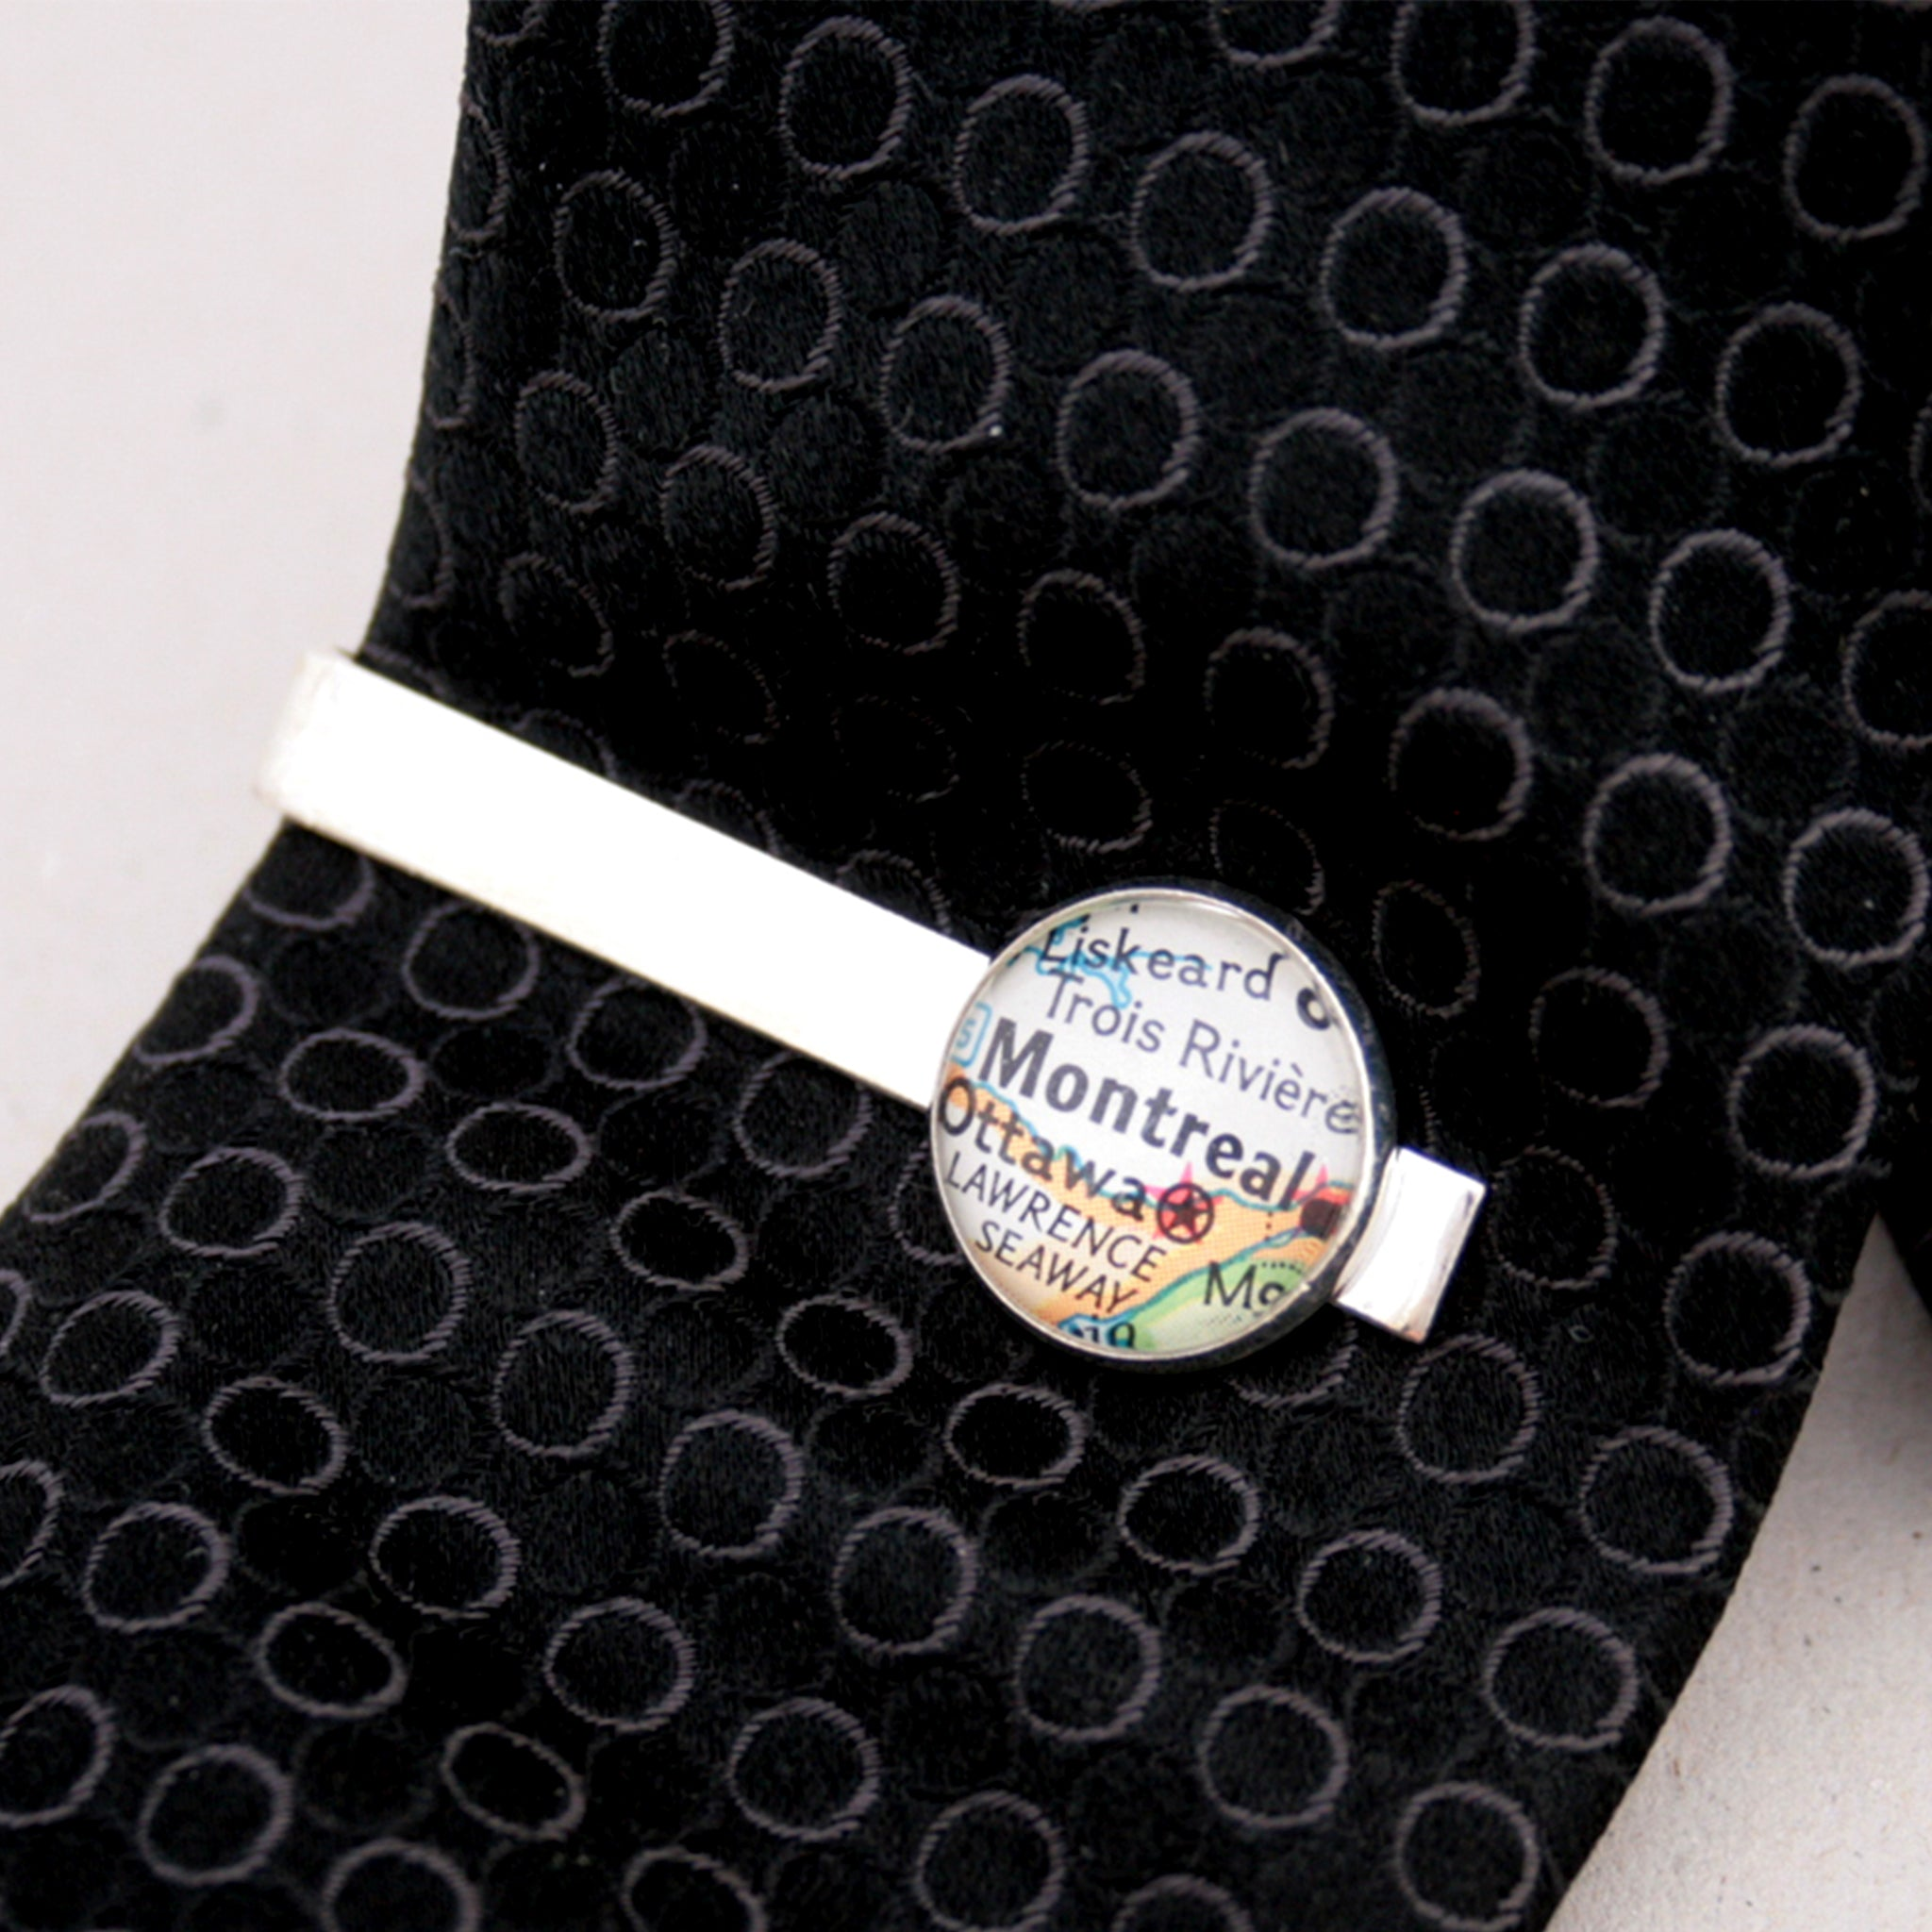 Tie clip in silver color featuring map of Montreal on a black tie